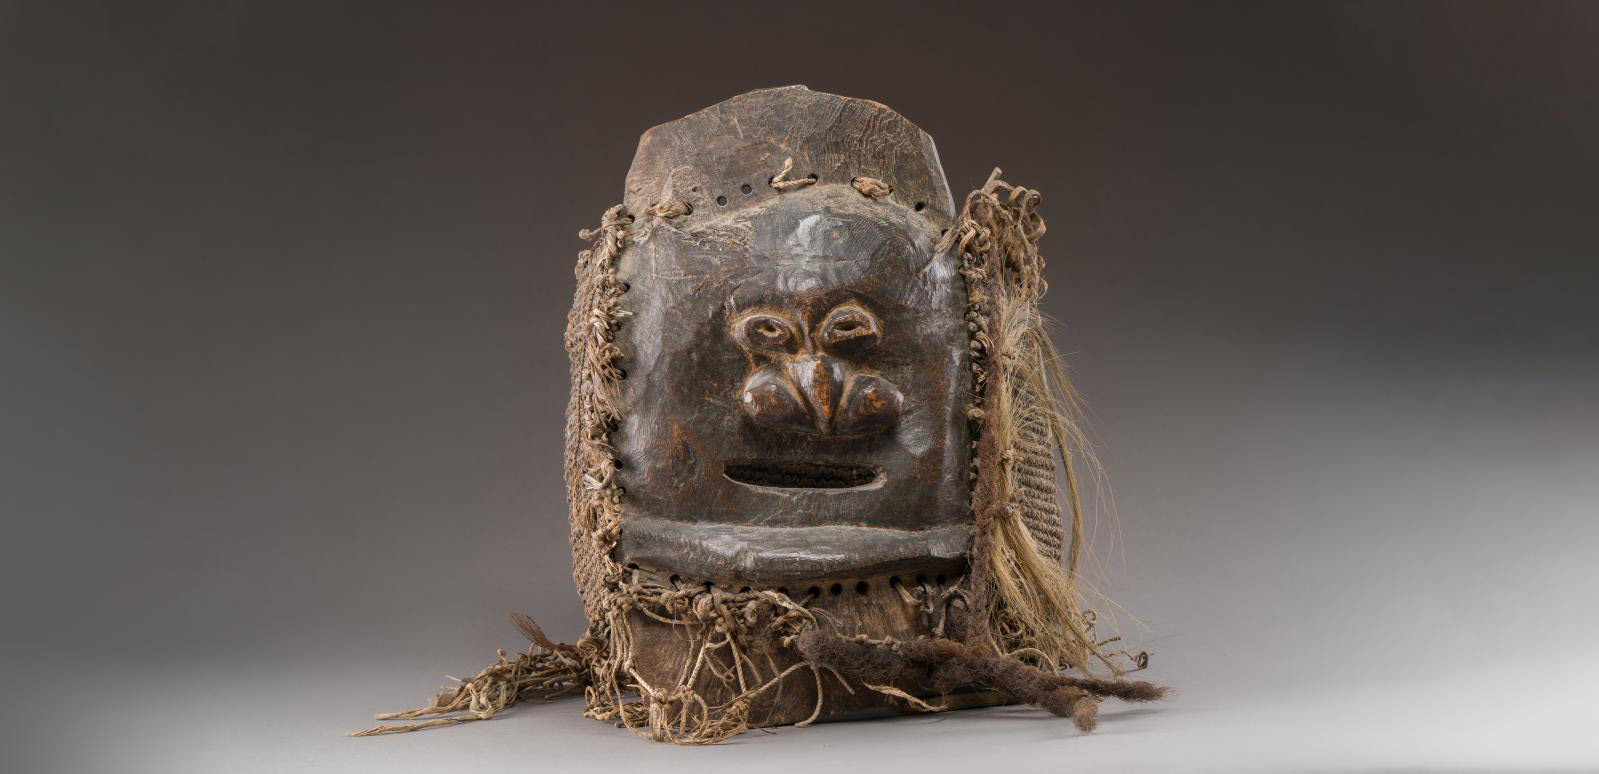 Melanesia, New Caledonia, southern style, Kanak people, 19th century. Mask depicting a human face (part of a mourner's costume), hard wood